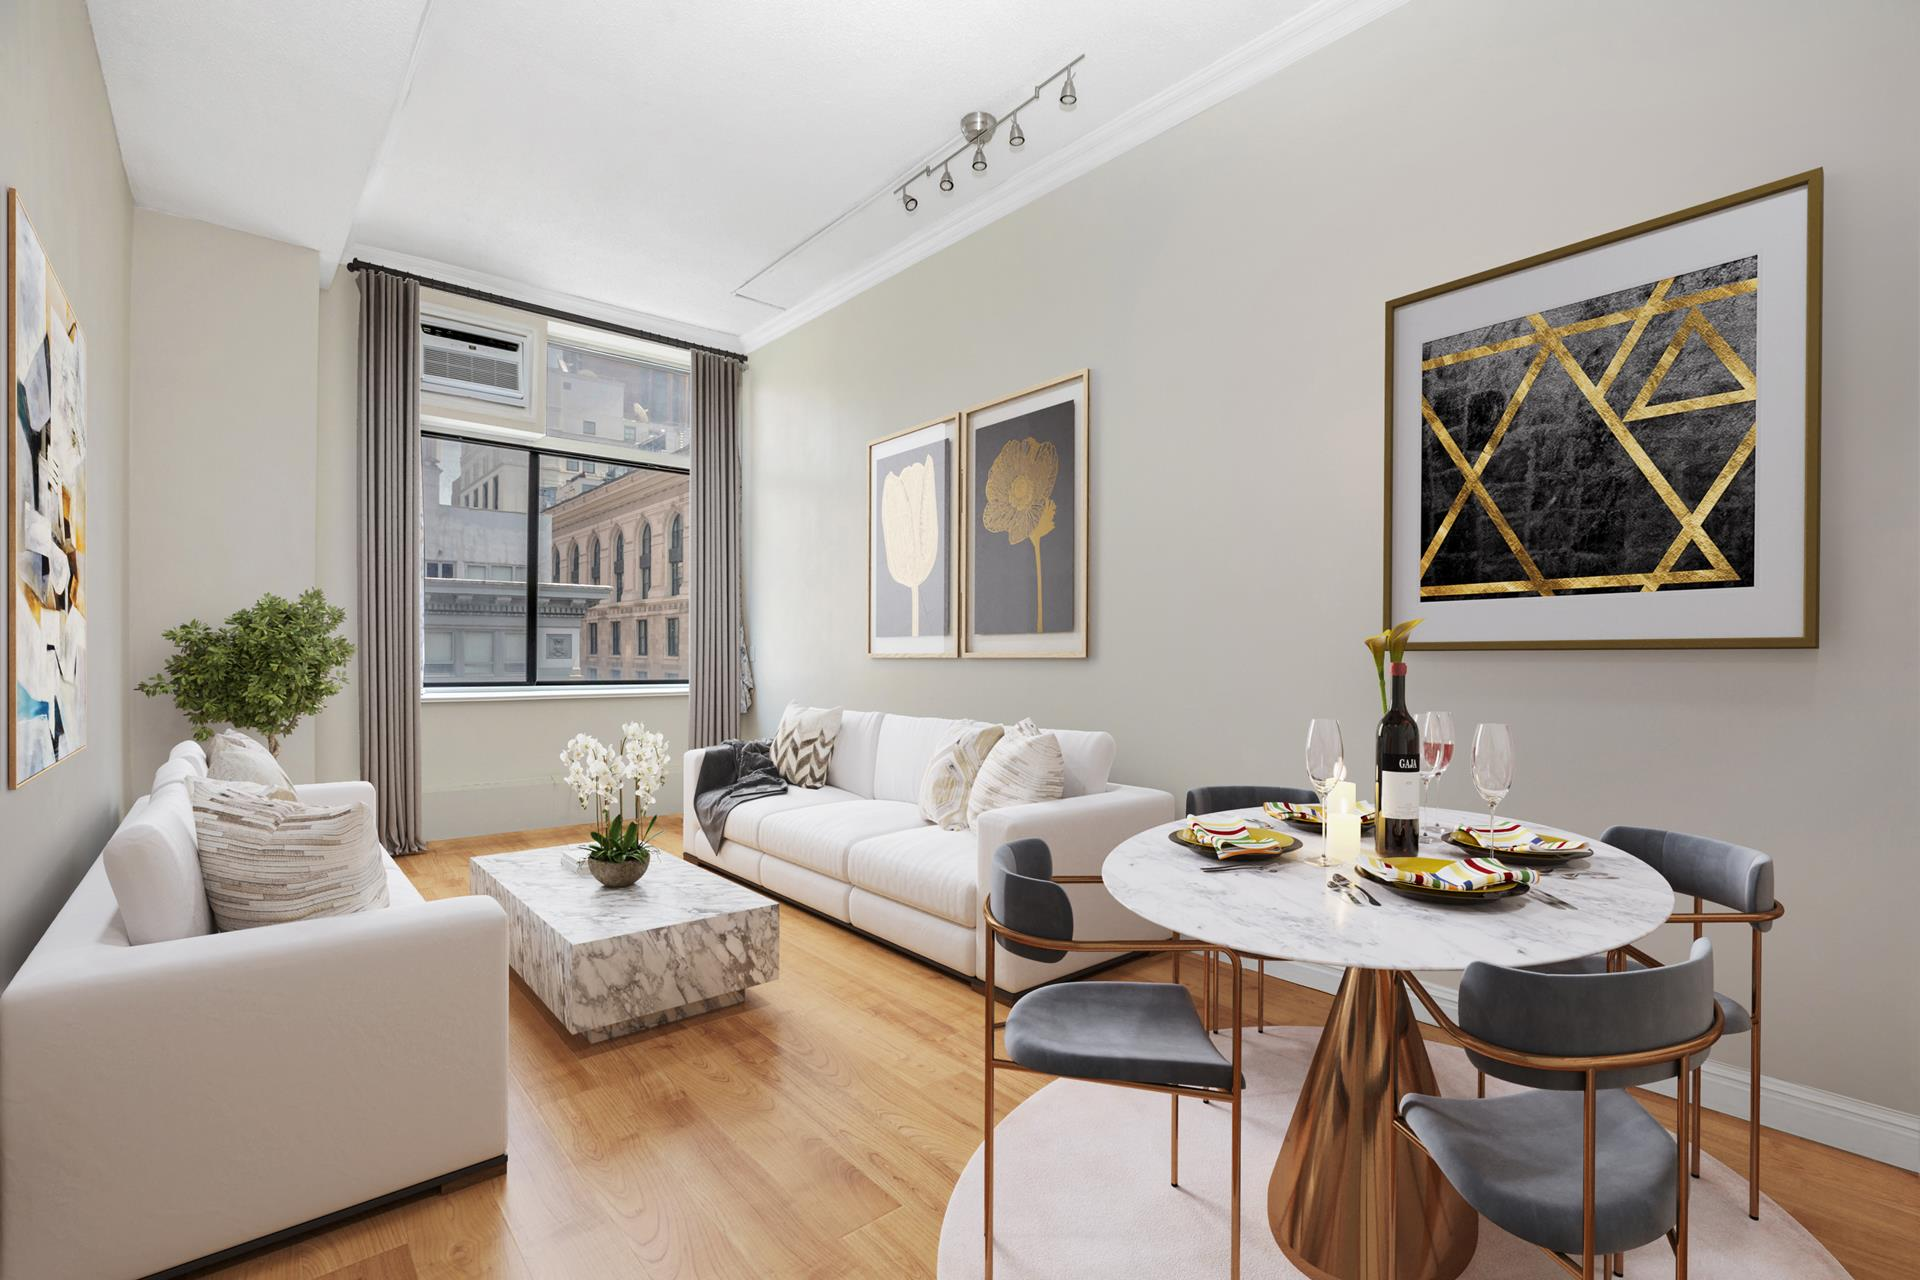 """ONE-OF-A-KIND OPPORTUNITY FOR AN AMAZING LOFT WITH 12-FOOT CEILINGS OVERLOOKING FIFTH AVENUE! Simply """"The Best Below-Market Deal"""" in the very heart of the city just north of NoMad. Move right into this large loft with a Downtown vibe for a fraction of   the price! The """"G"""" line is one of the most desirable in the building with soaring ceilings, oversized windows with Fifth Avenue city views, amazing Eastern light, 22 foot long dining and living area perfect for entertaining with space for a king-sized bed,   plus laundry on every floor. The additional cozy, upstairs sleeping loft is perfect for privacy, or can be used for exceptional storage. The kitchen features new stainless steel appliances, custom backsplash, and great storage. Refinished hardwood flooring,   custom lighting, and city views complete this unique offering - there is no better value on the market! The desirable building offers a full-time Doorman, live-in Super, laundry on every floor, plus a newly renovated, furnished roof deck with sprawling 360-degree   views. This flexible, pet friendly Coop allows pied-a-terre ownership, parental purchasing, co-purchasing, guarantors and subletting. Enjoy the height of New York City living with an unmatchable location and luxury amenities, just a 10-minute walk to each   Grand Central and Penn Station. This is an opportunity not to be missed!"""